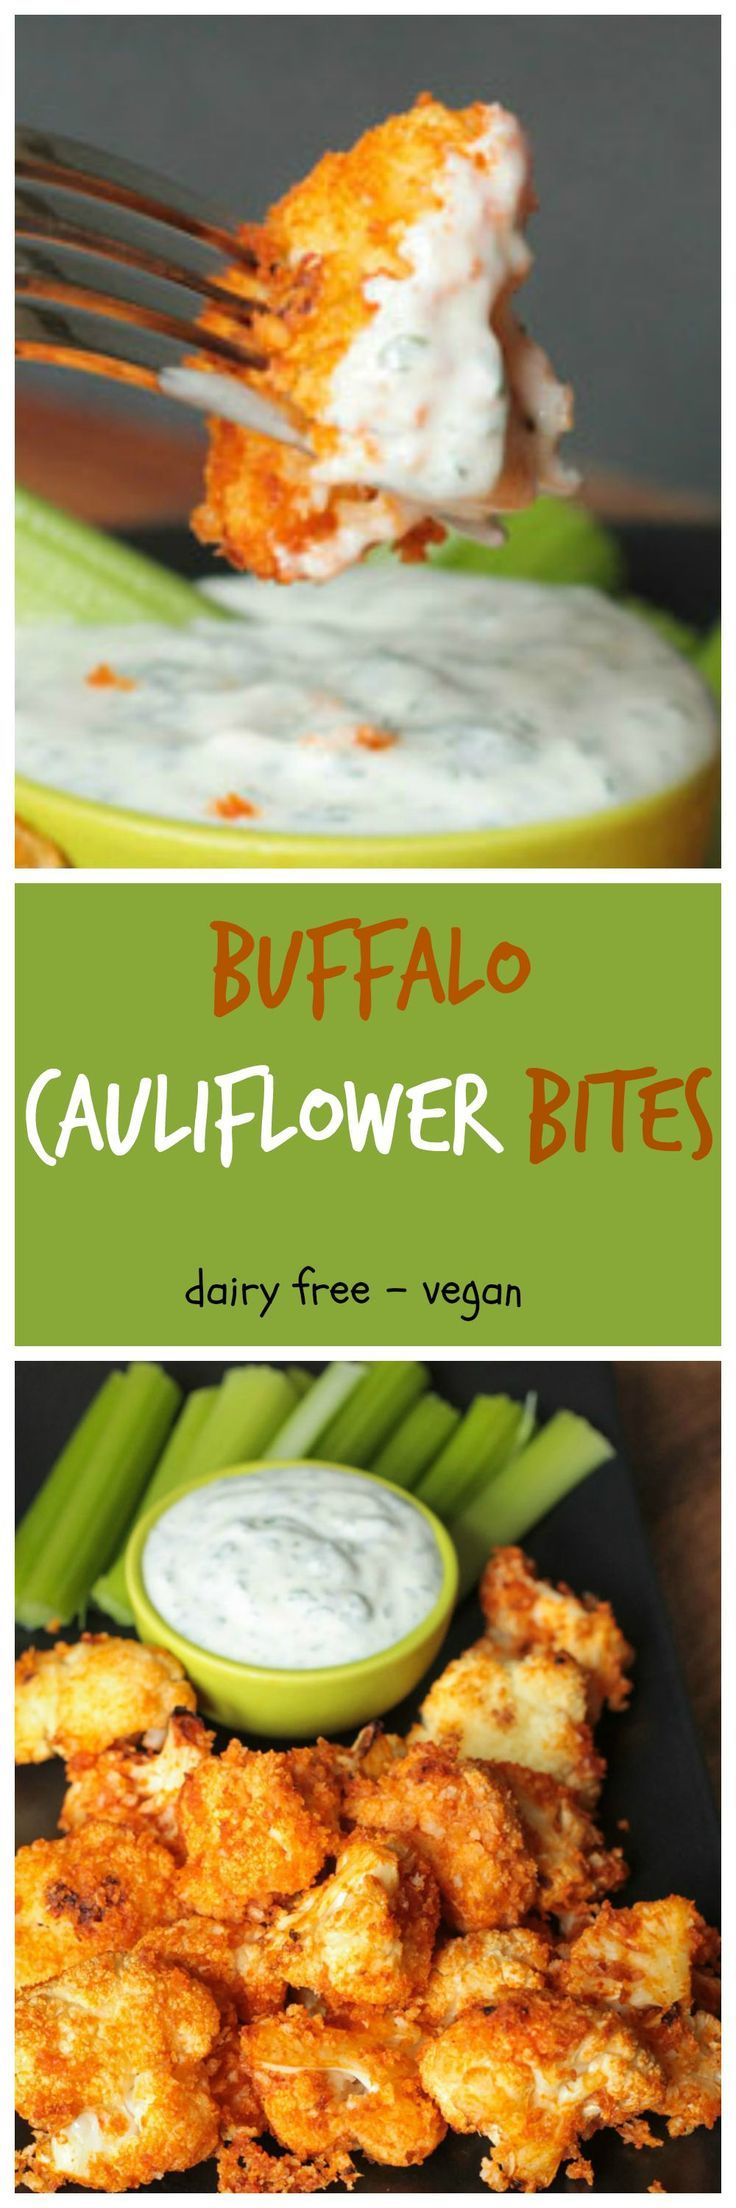 Hands down my all time favorite !! Only I make vegan bluecheese dressing. I have been eating so unheal